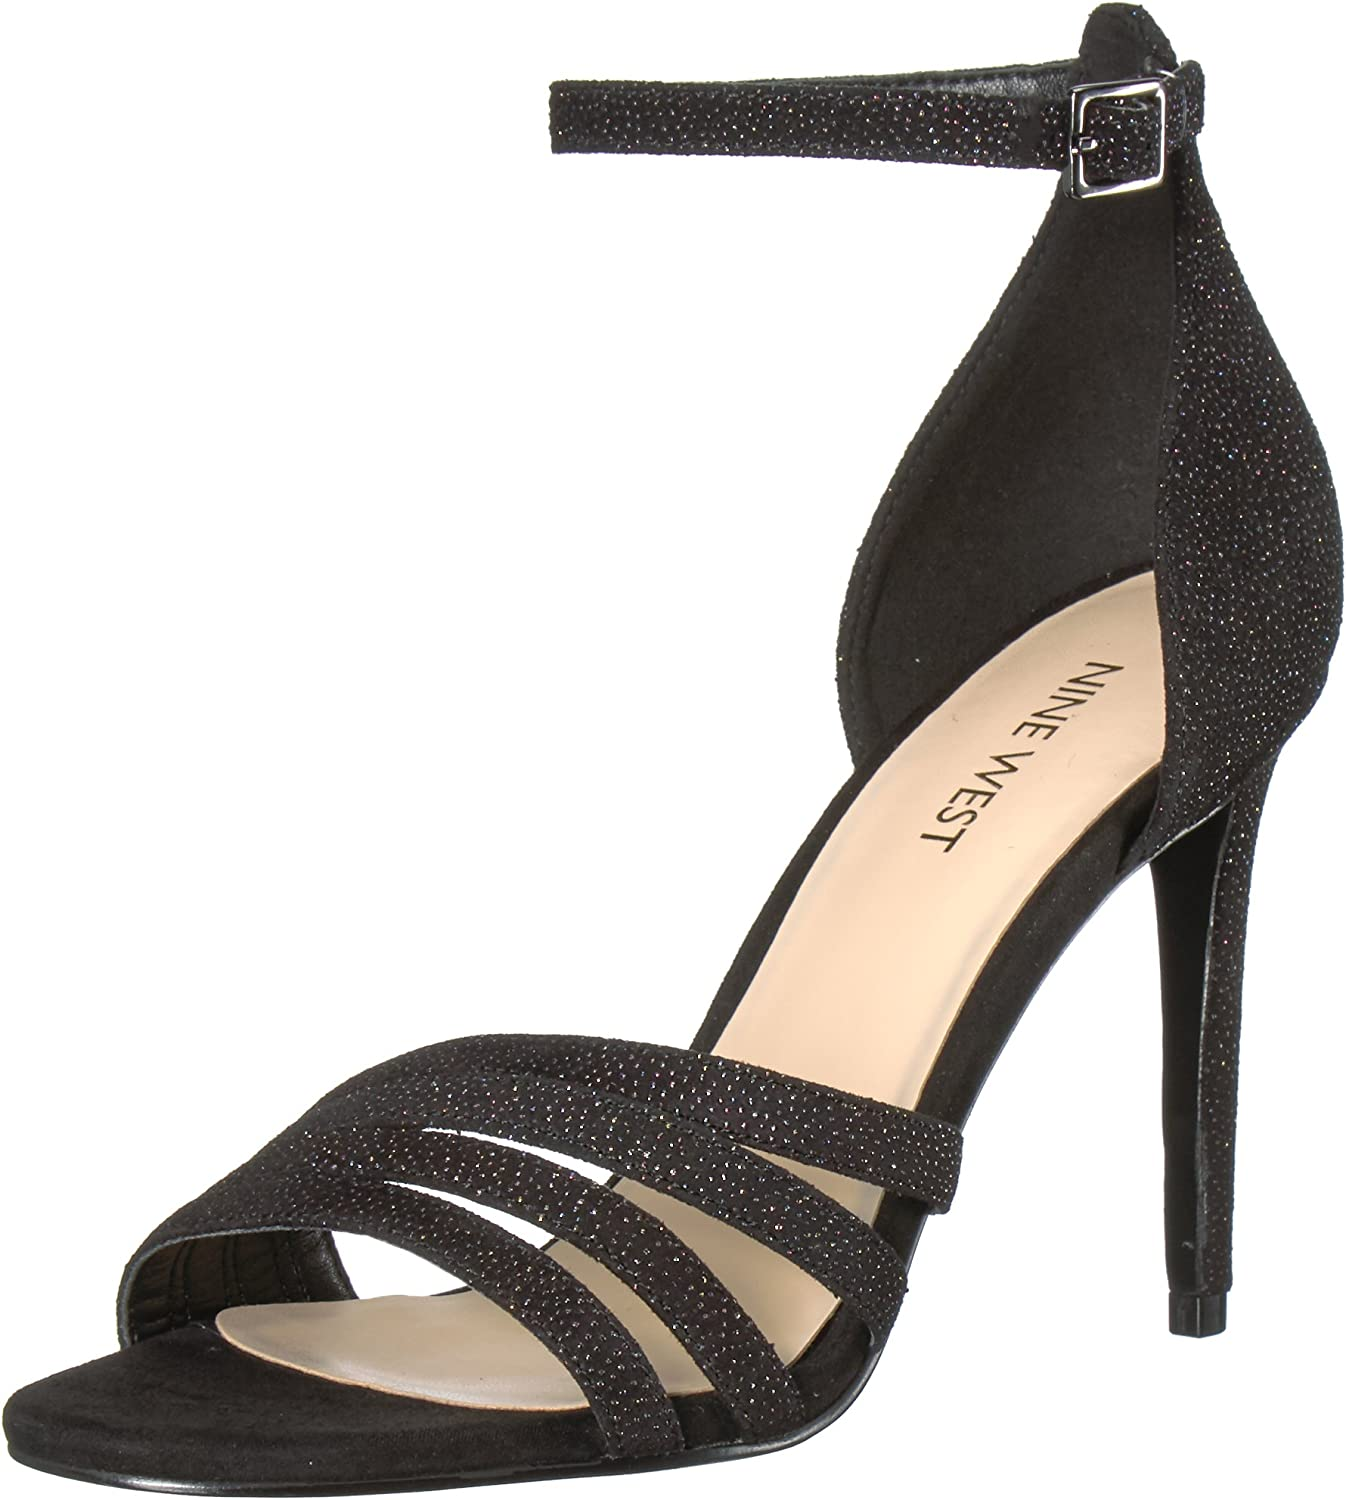 Nine West Womens Jacaran Leather Heeled Sandal